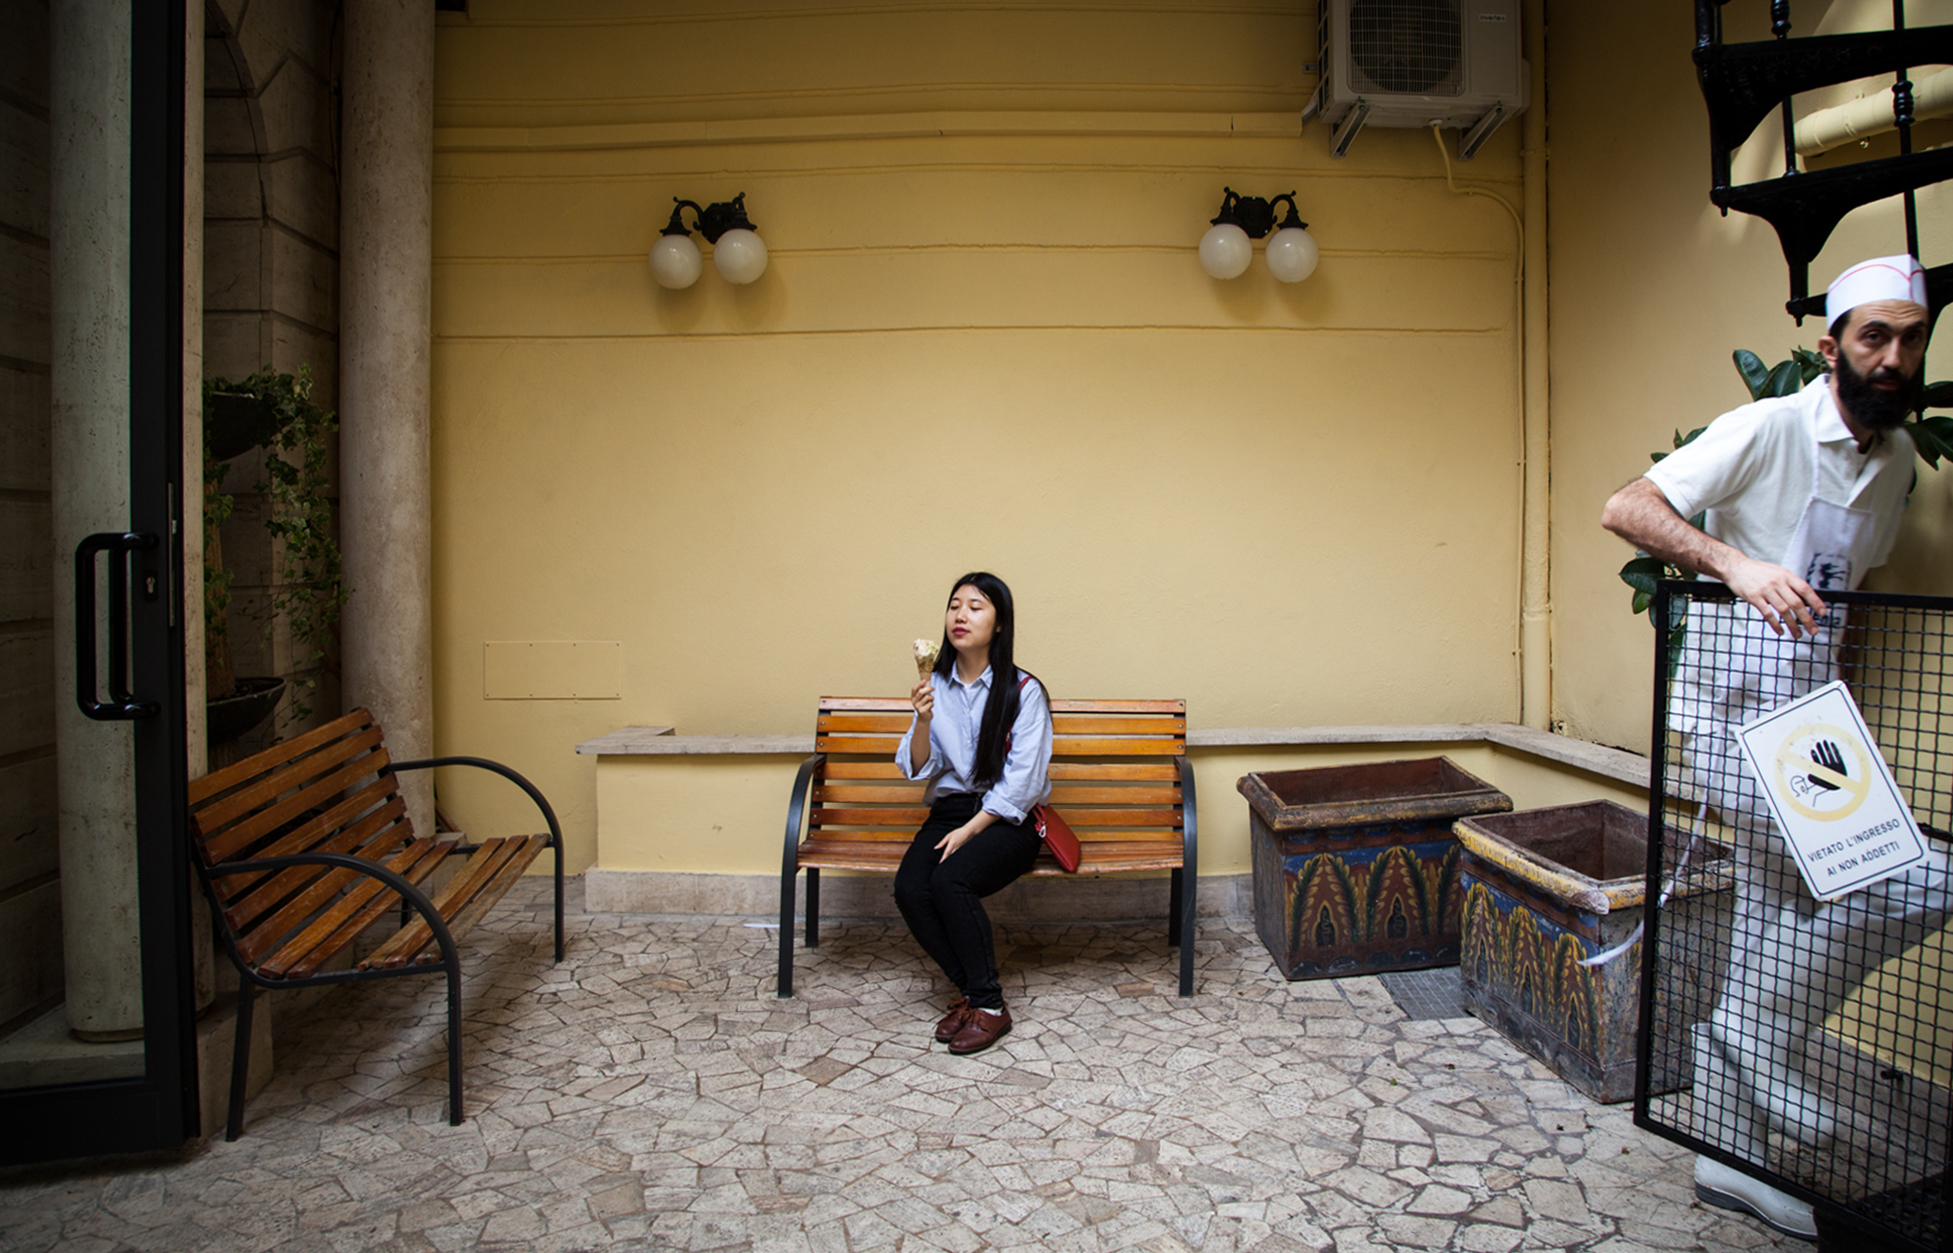 Lilia Meng eats a gelato in the yard of Fassi, a famous gelato store near Piazza Vittorio.